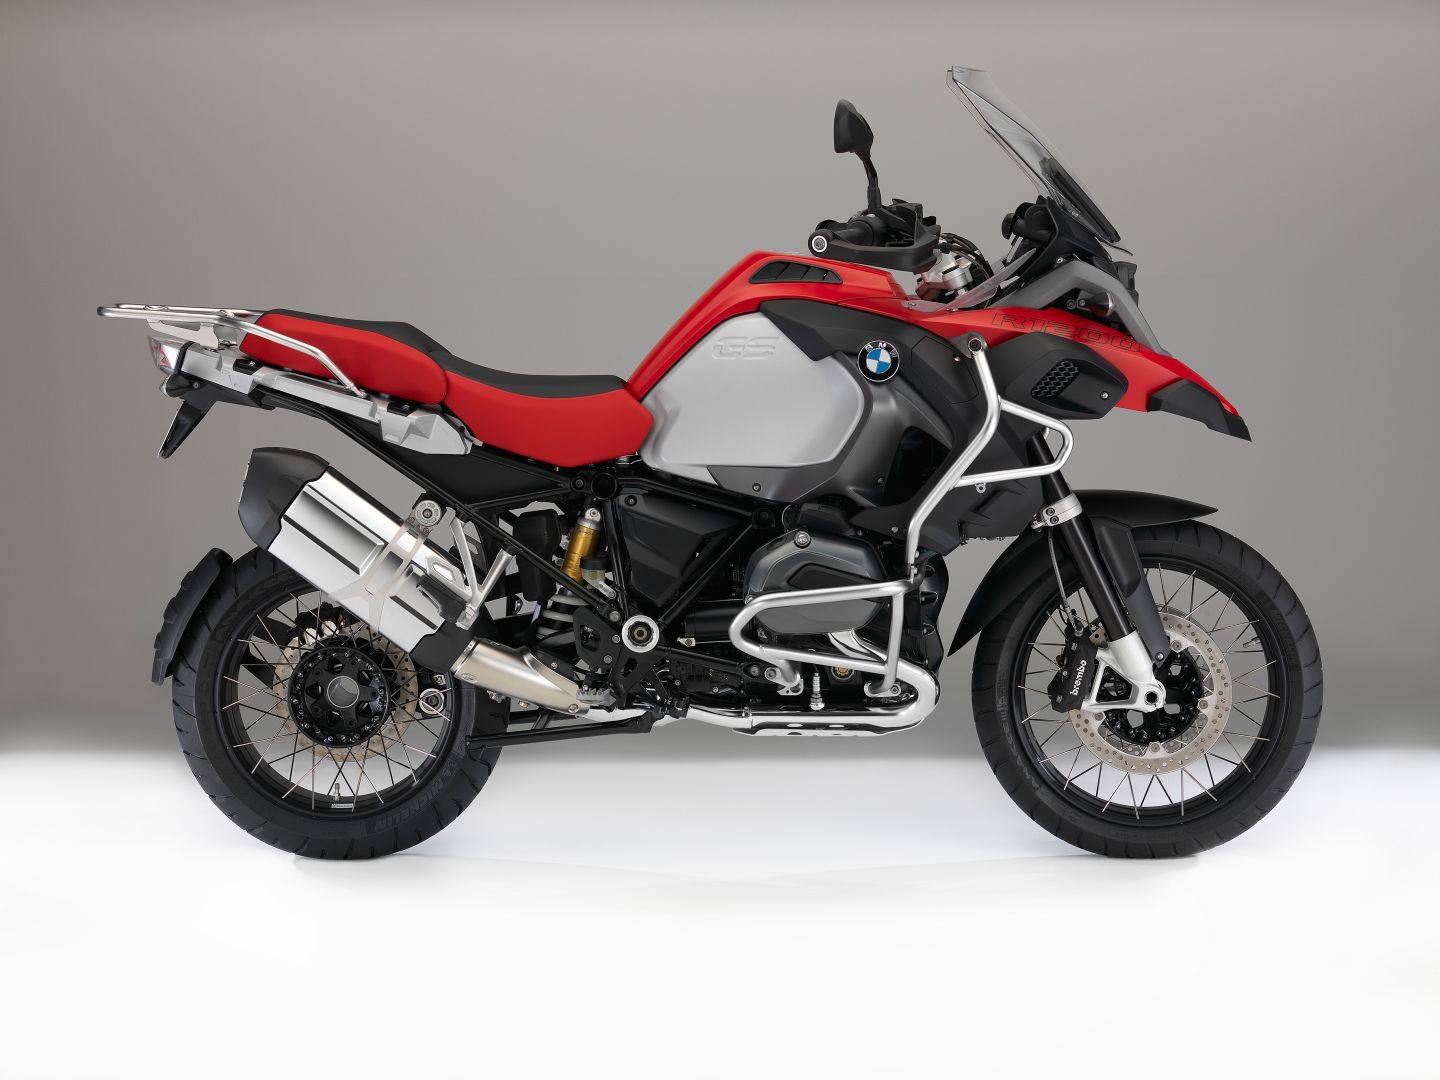 hight resolution of bmw motorcycles get upgraded colors and new features for 2016 wiring diagram likewise bmw motorcycles r1200 on bmw k1200lt radio